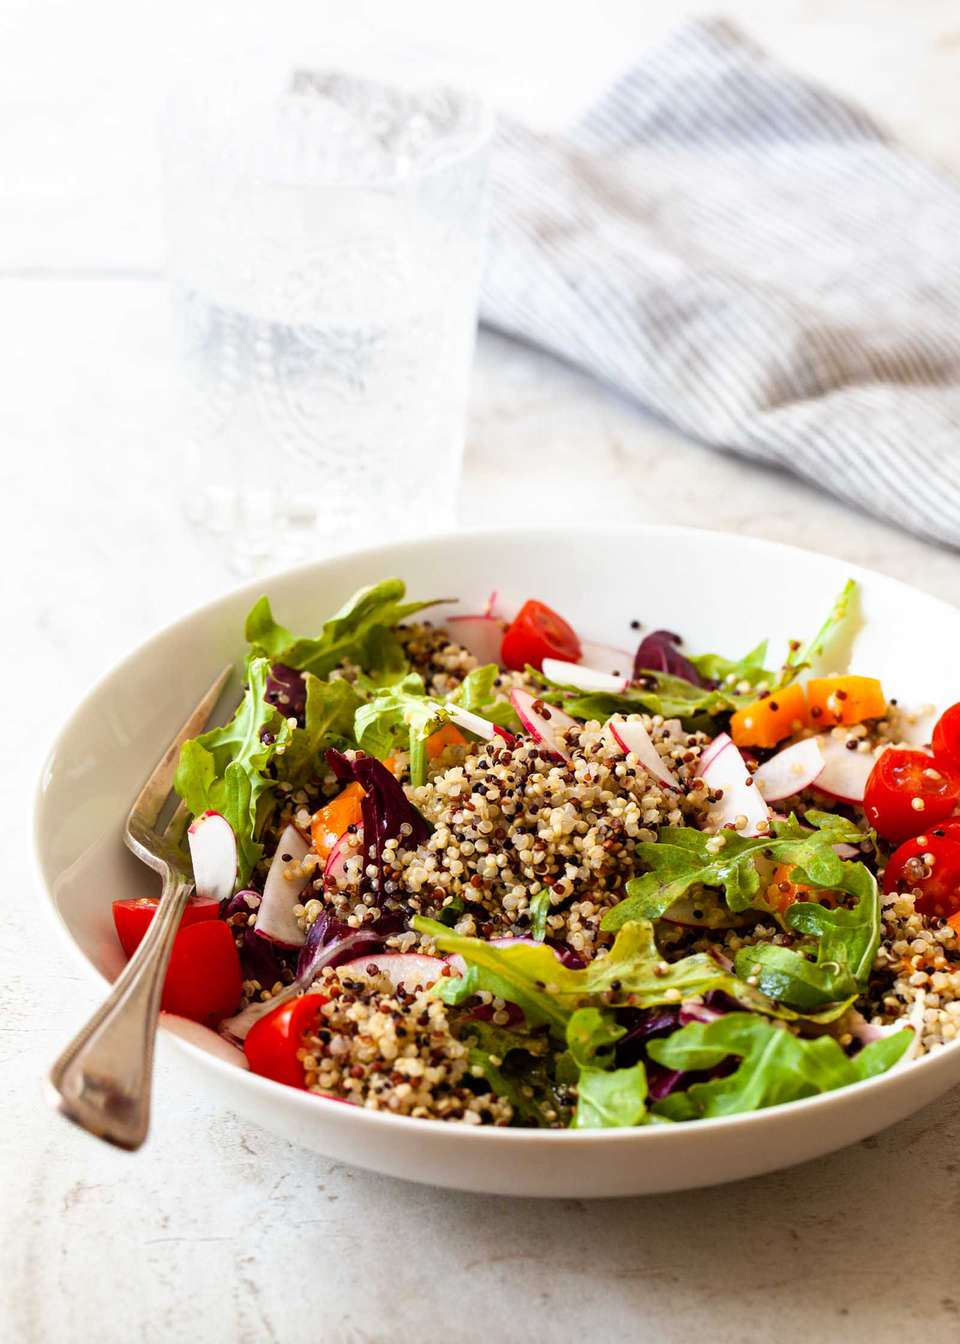 Perfect quinoa in a bowl along with lettuce, tomatoes, radish and a fork.